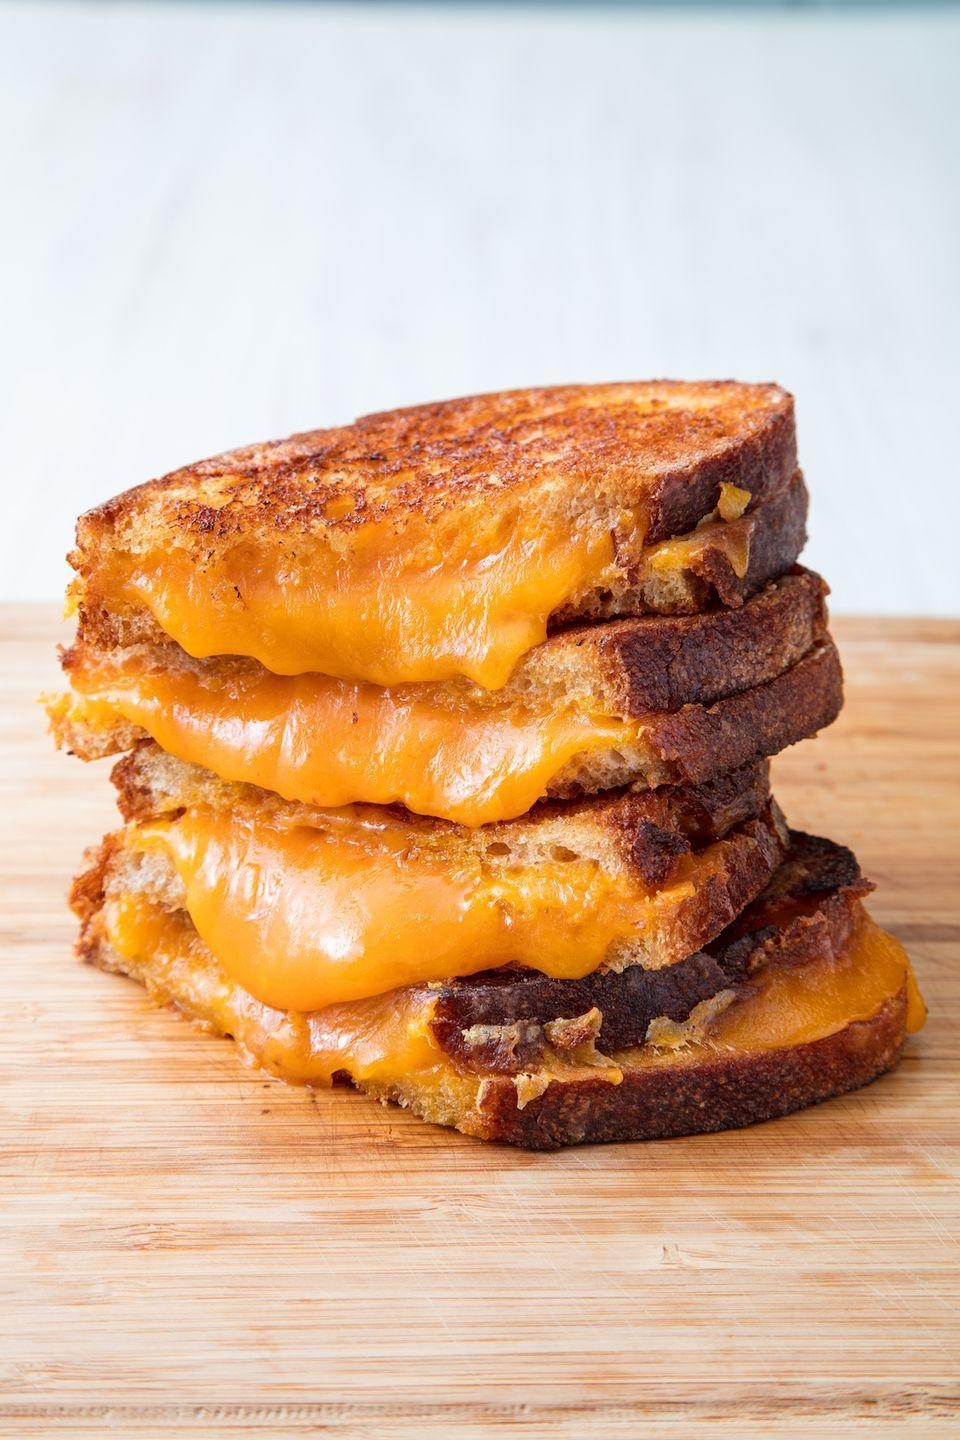 """<p>It's all about the crust. </p><p>Get the recipe from <a href=""""https://www.delish.com/cooking/recipe-ideas/a19610233/how-to-make-best-grilled-cheese/"""" rel=""""nofollow noopener"""" target=""""_blank"""" data-ylk=""""slk:Delish"""" class=""""link rapid-noclick-resp"""">Delish</a>.</p><p><a class=""""link rapid-noclick-resp"""" href=""""https://www.amazon.com/Calphalon-1937309-Classic-Nonstick-Omelet/dp/B01CY3N2IM?tag=syn-yahoo-20&ascsubtag=%5Bartid%7C1782.g.1590%5Bsrc%7Cyahoo-us"""" rel=""""nofollow noopener"""" target=""""_blank"""" data-ylk=""""slk:BUY NOW"""">BUY NOW</a> Nonstick Skillet, $18.70<br></p>"""